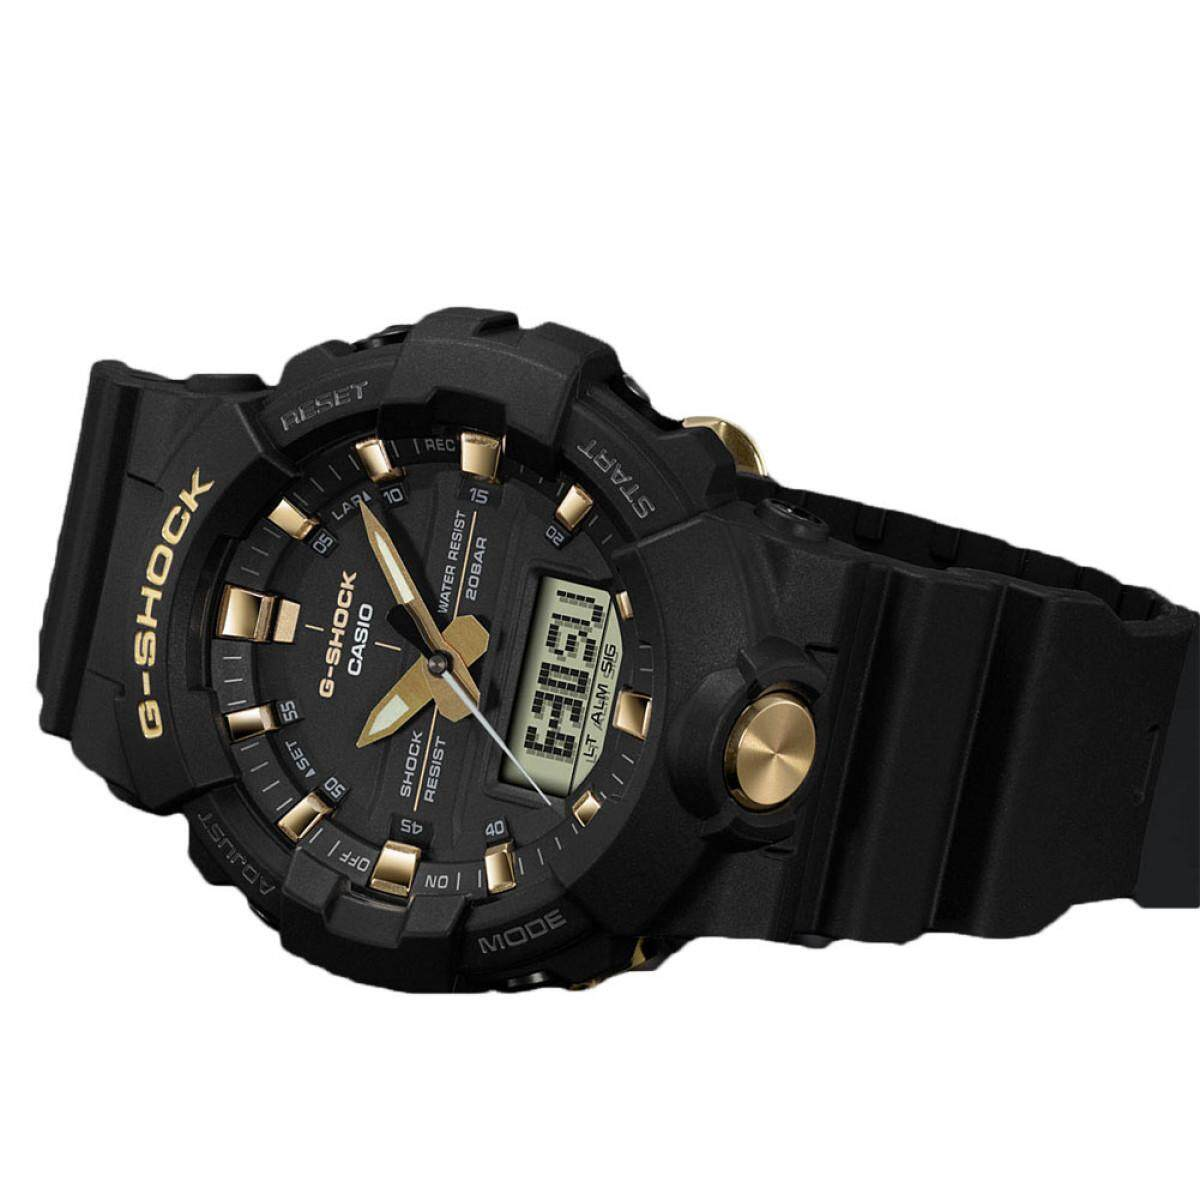 Buying Casio G Shock Ga 400gb 1a9 Analog Digital Jam Tangan Pria 100cf 1a9dr Original 810b Standard Mens Watch